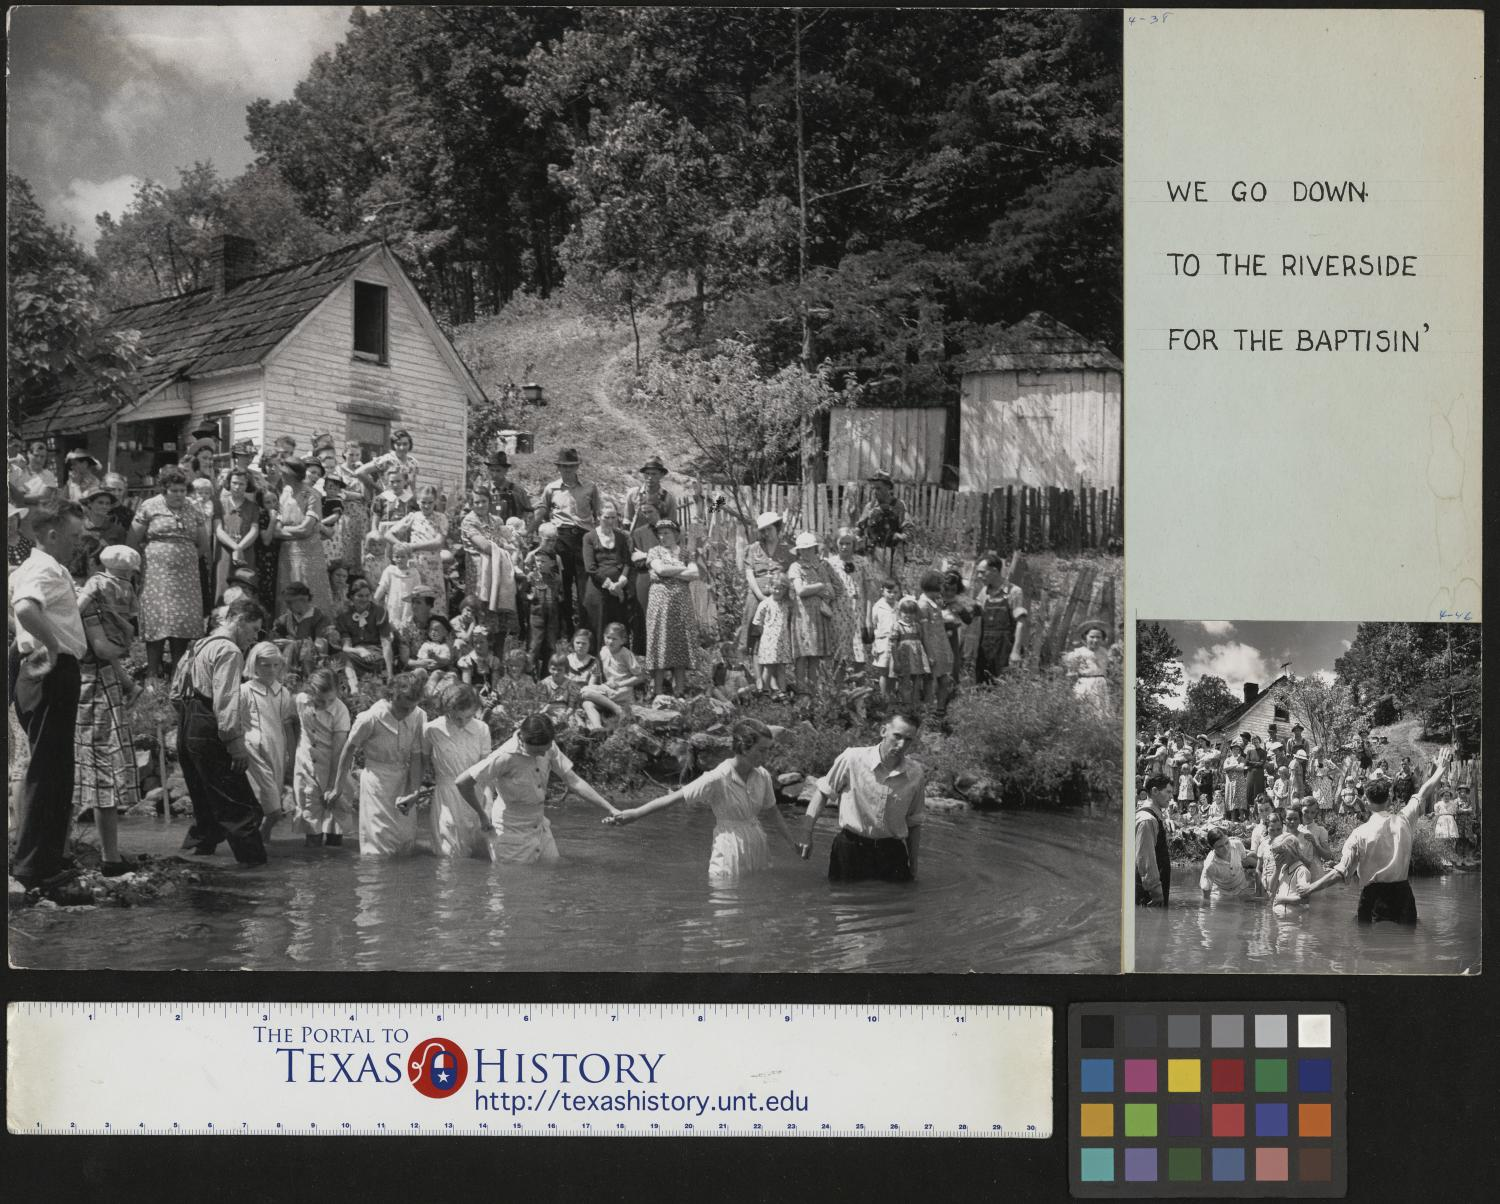 """[Baptism], Photograph of Ivana Wright being led into the water for baptism by Preacher Hugh Vancel outside John Owens home in Red Hill, Tennessee. She is holding hands with Hester Welch, Minnie Hicks, Cleo McCurey, Lilian Hicks, and Lenore Treece who are also in the creek, following her. Multiple people from the town are in attendance, standing on the bank of the creek in the background. The image is on a mat that includes text in the upper-right corner that says """"We go down to the riverside for the baptisin"""" and an inset of another image in the series is in the lower-right corner of the mat.,"""